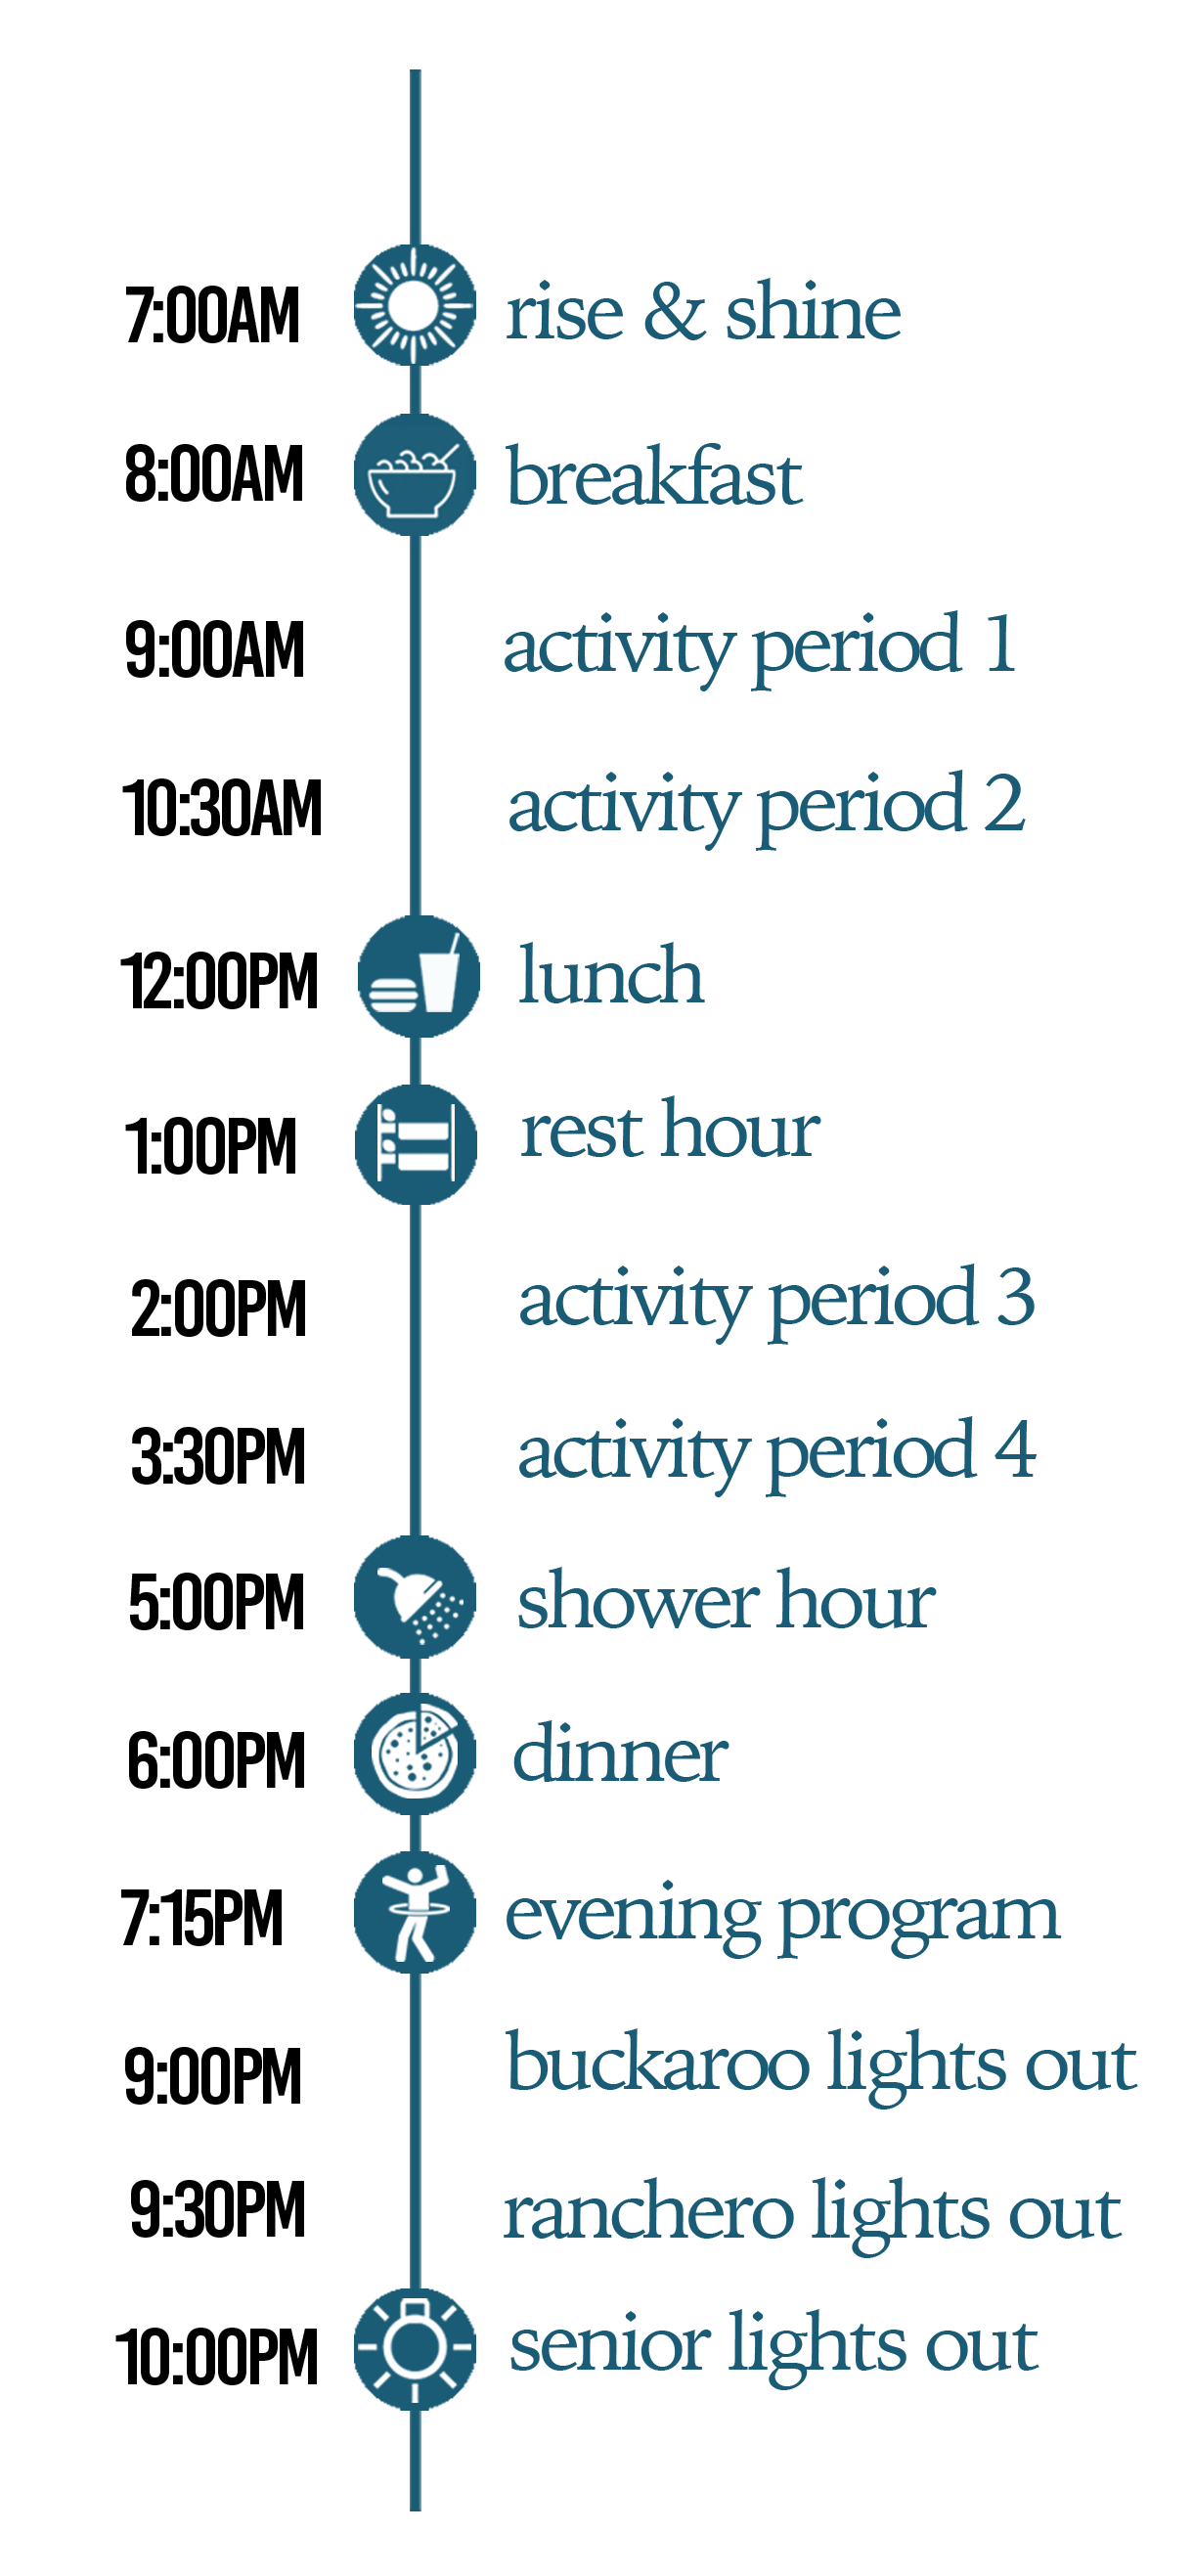 A sample schedule showing wake up time, breakfast, activity periods, lunch, more activities, dinner, evening program, and lights out times.